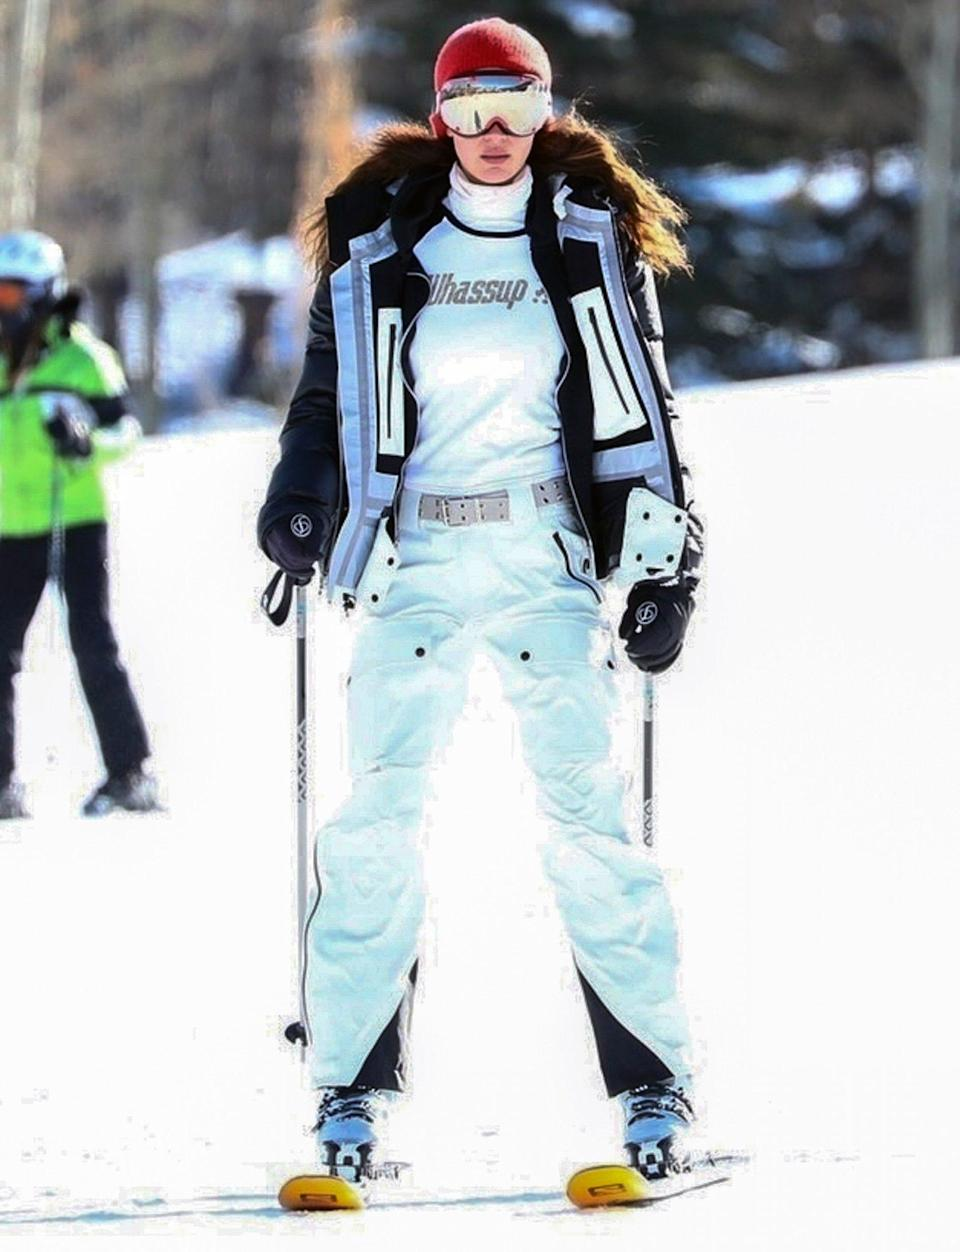 <p>Bella Hadid looks chic in her snow gear as she hits the slopes in Aspen, Colorado on Sunday.</p>